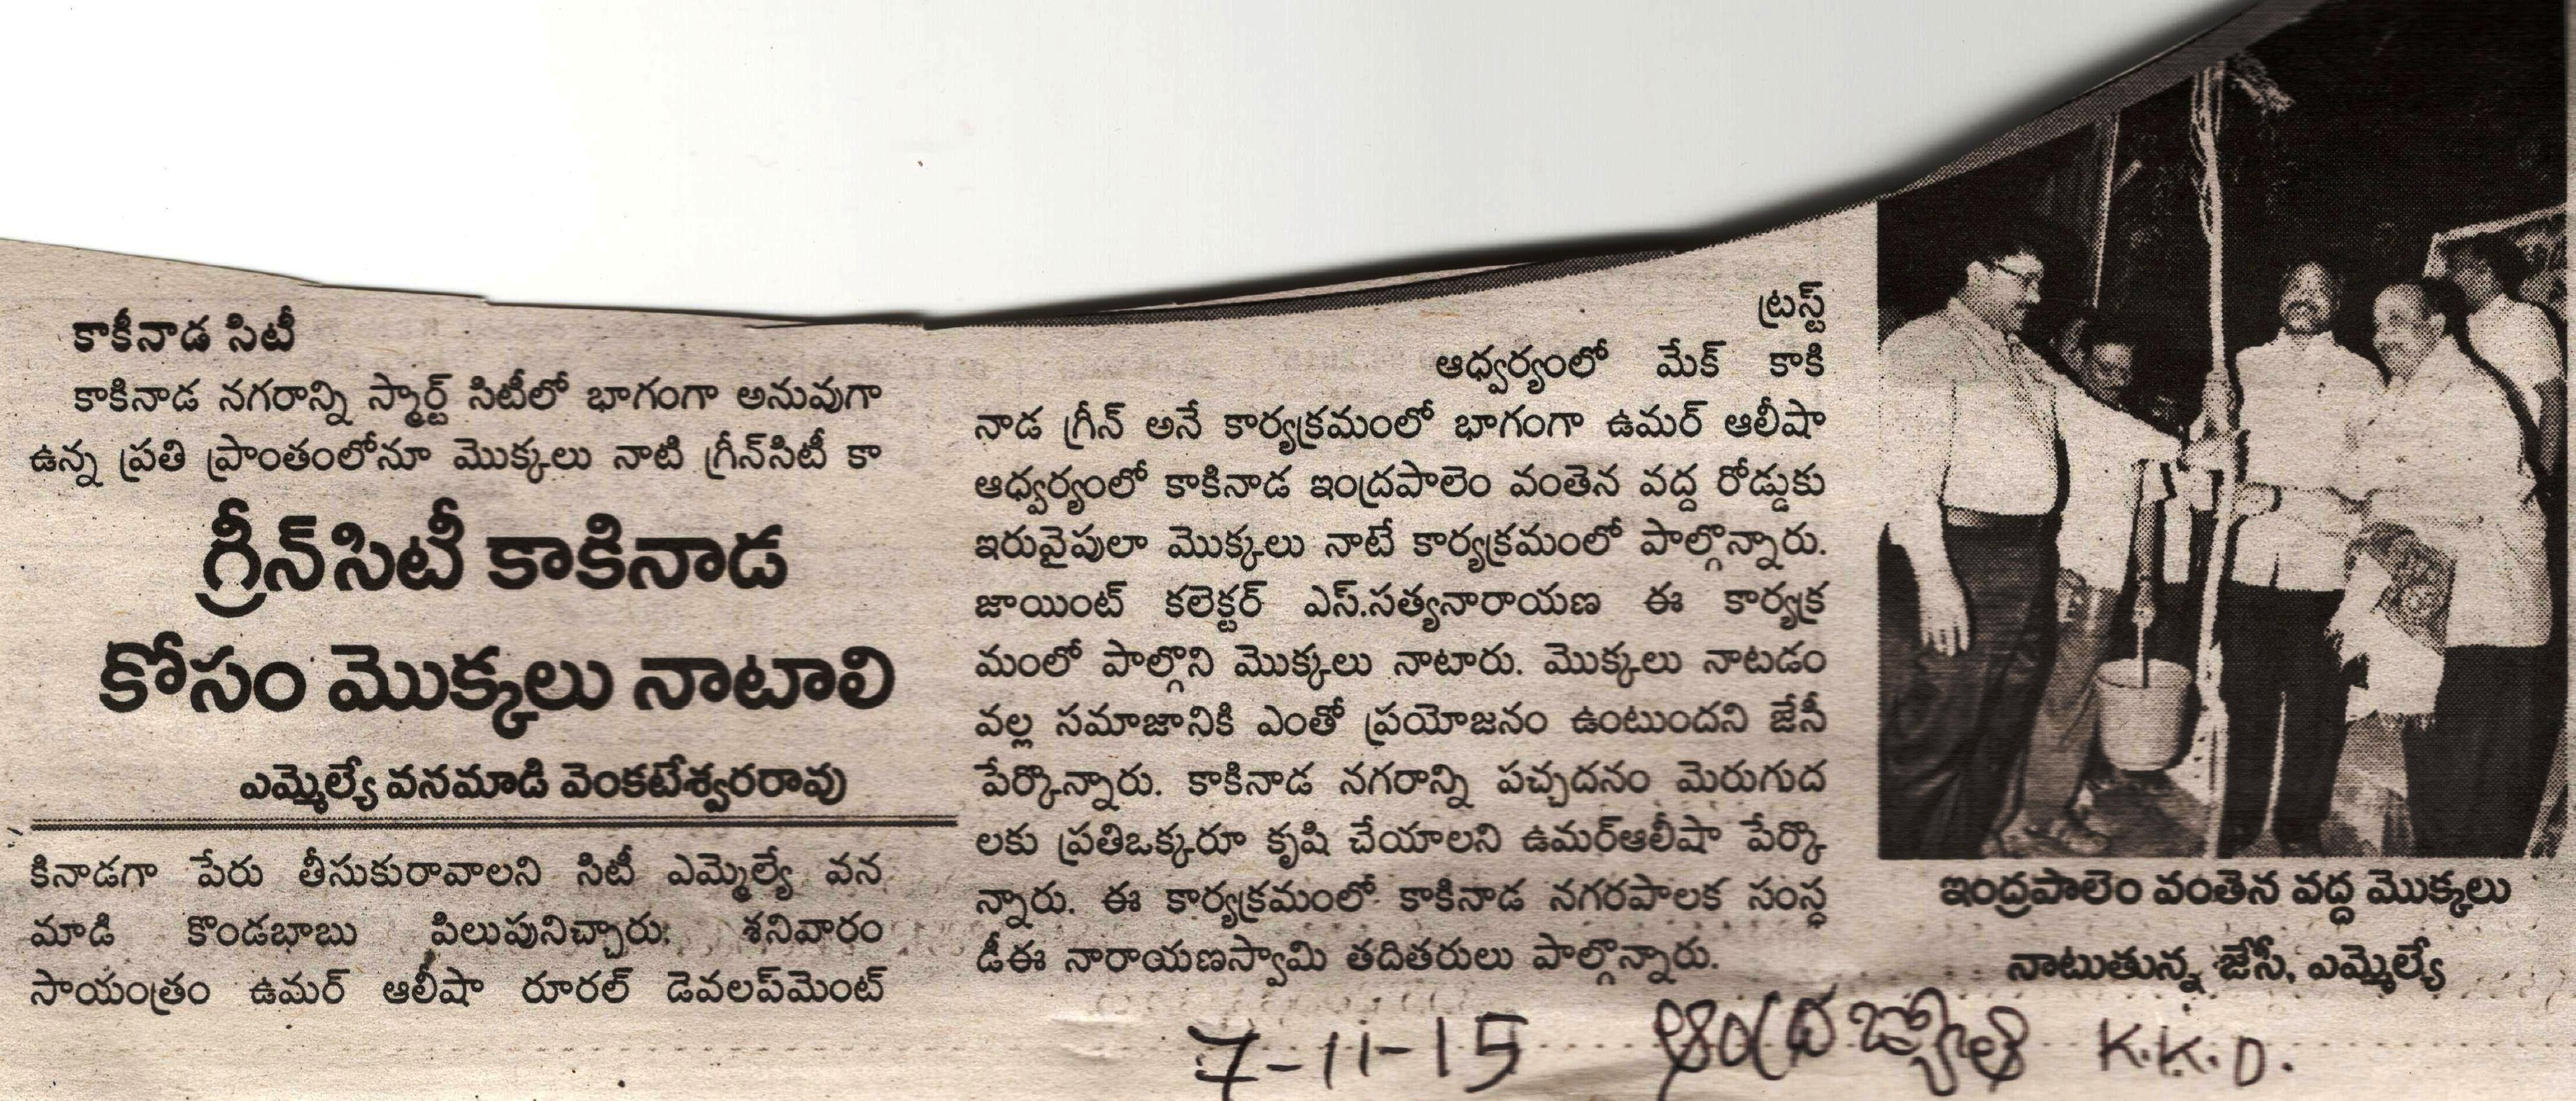 News Clipping about Make Kakinada Green in Andhra Jyothi